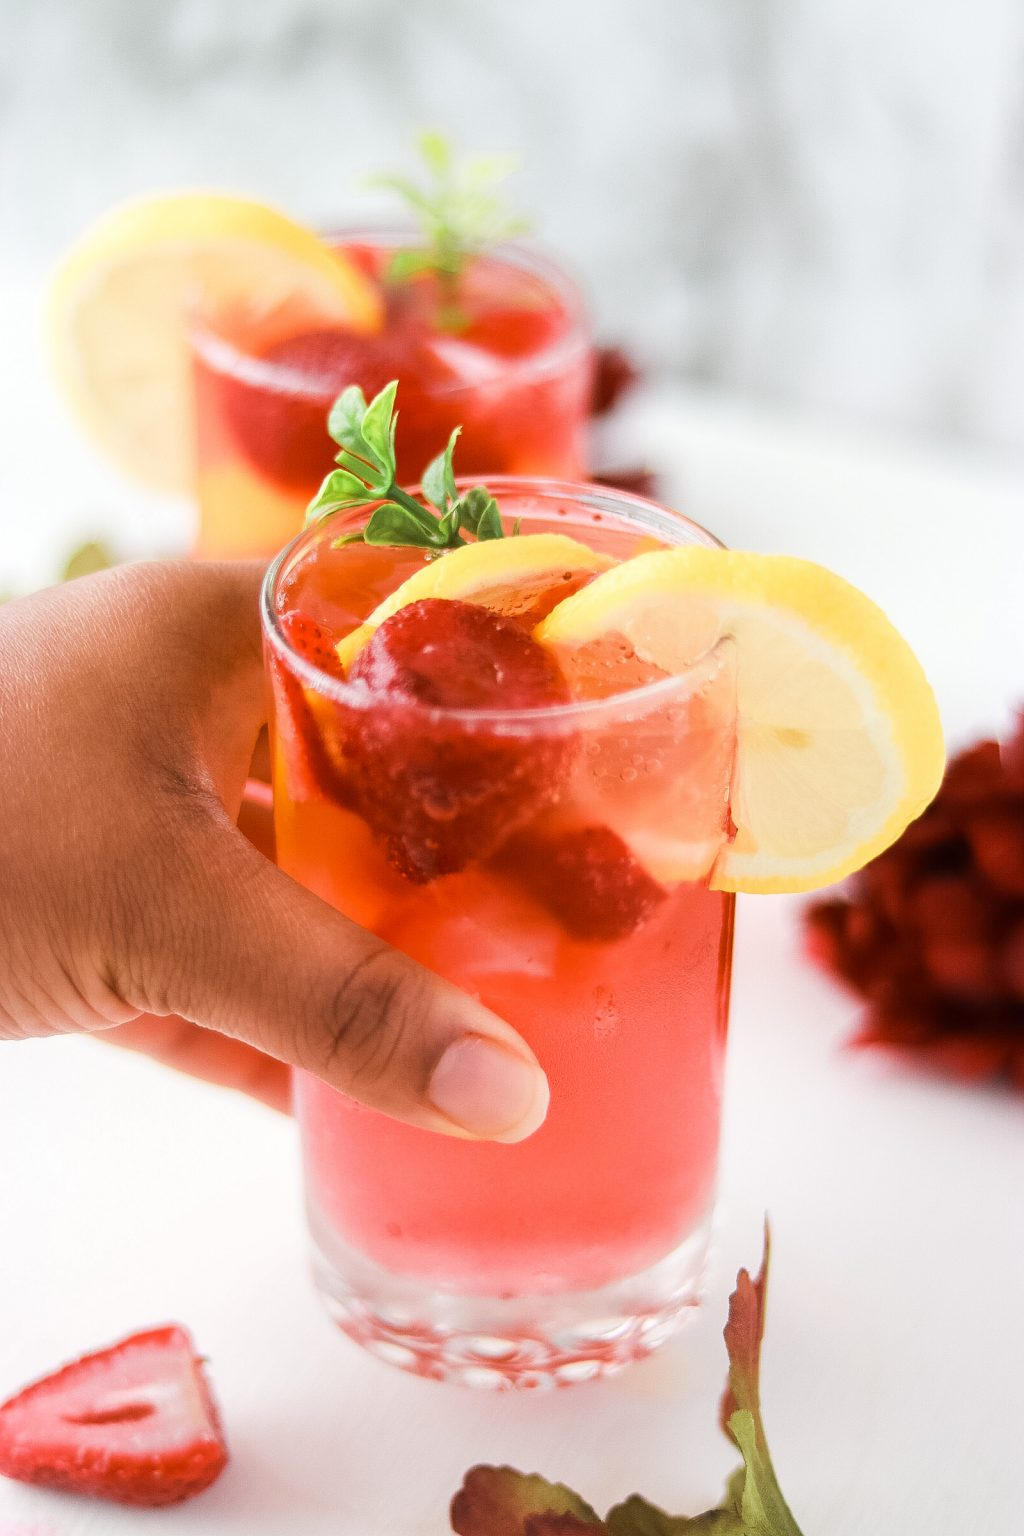 Strawberry sprite mocktail recipe 5744 1024x1536 - Strawberry Sprite Mocktail | Perfect Drink For The Summertime